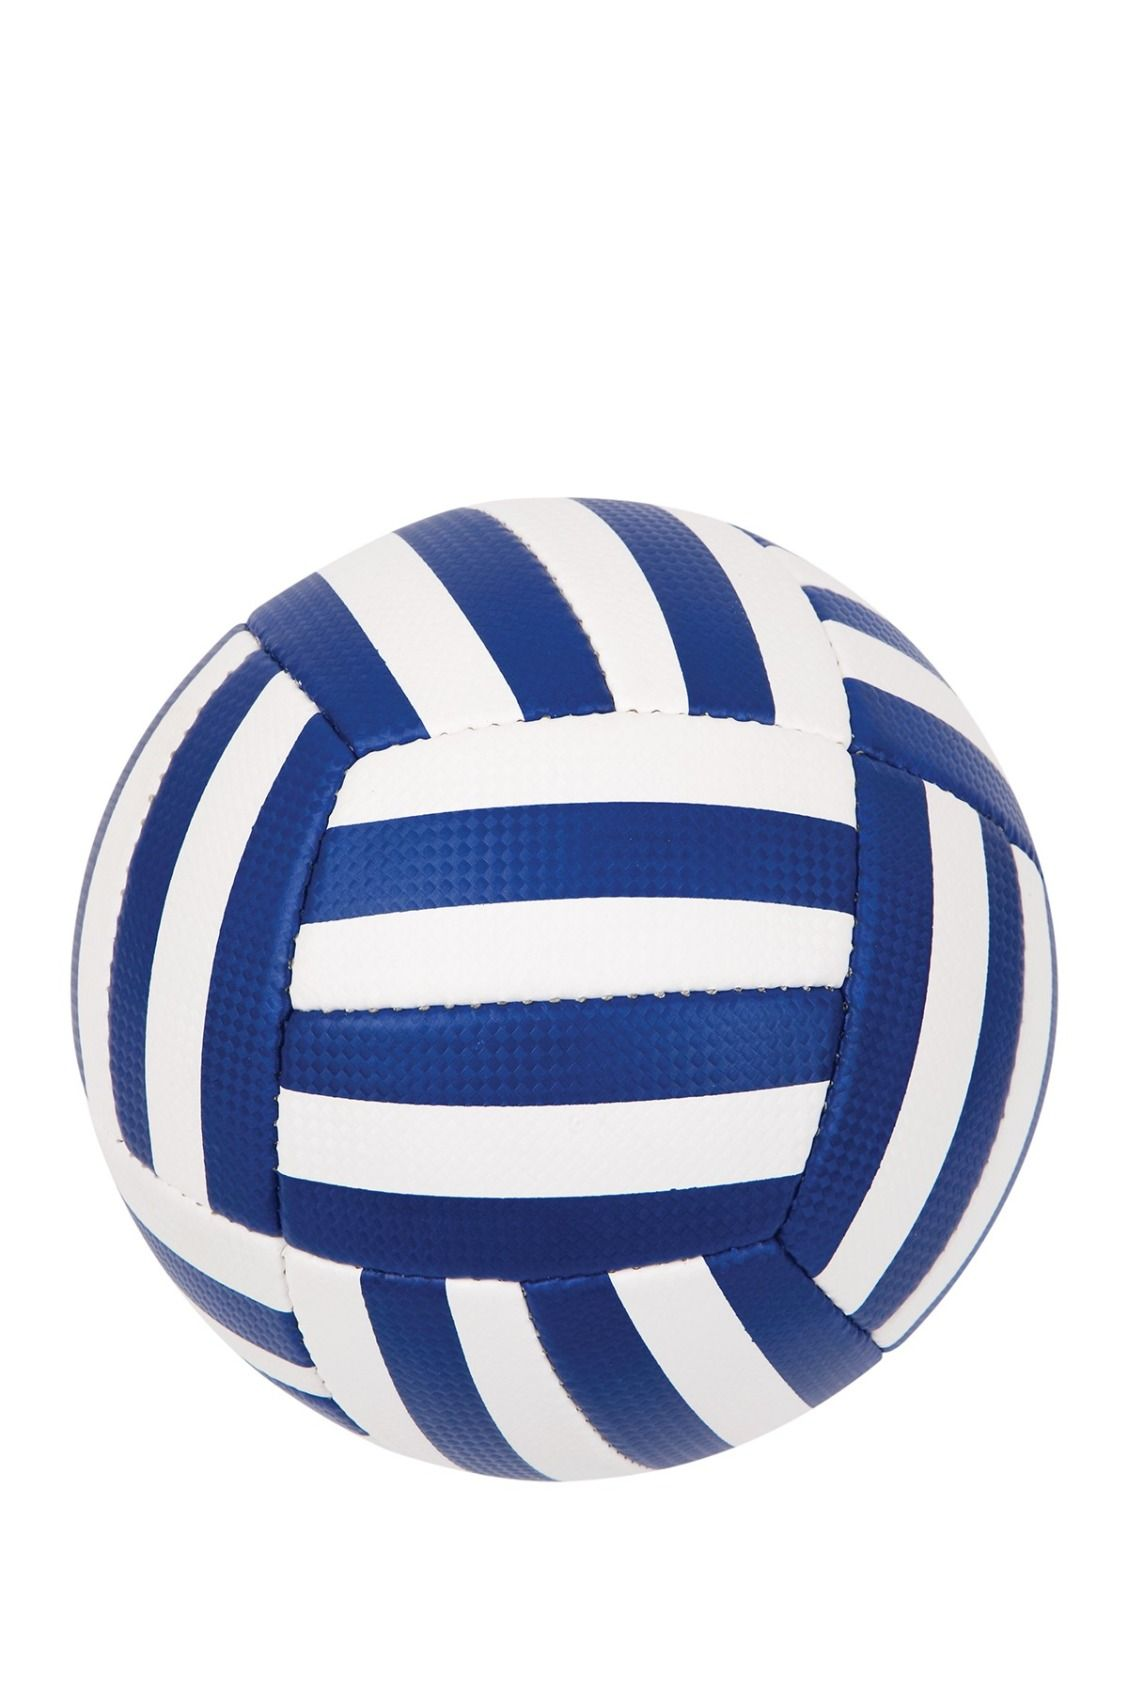 Games Can Bring Friends Together And Maybe Even Make You A Friend Or Two On The Beach Soccer Ball Blue And White Soccer